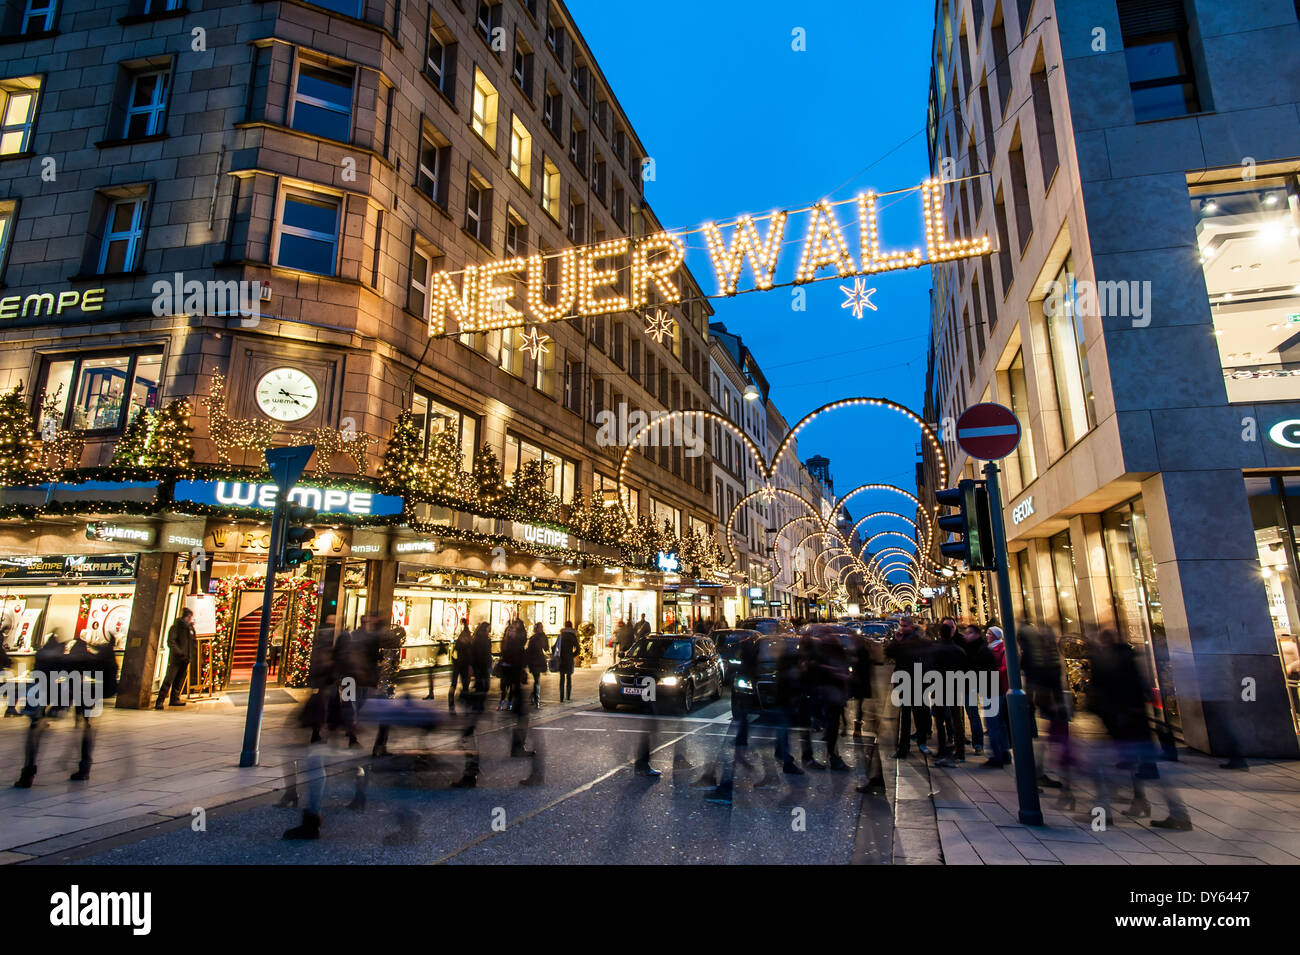 shopping street in hamburg called neuer wall at christmas time stock photo 68361783 alamy. Black Bedroom Furniture Sets. Home Design Ideas